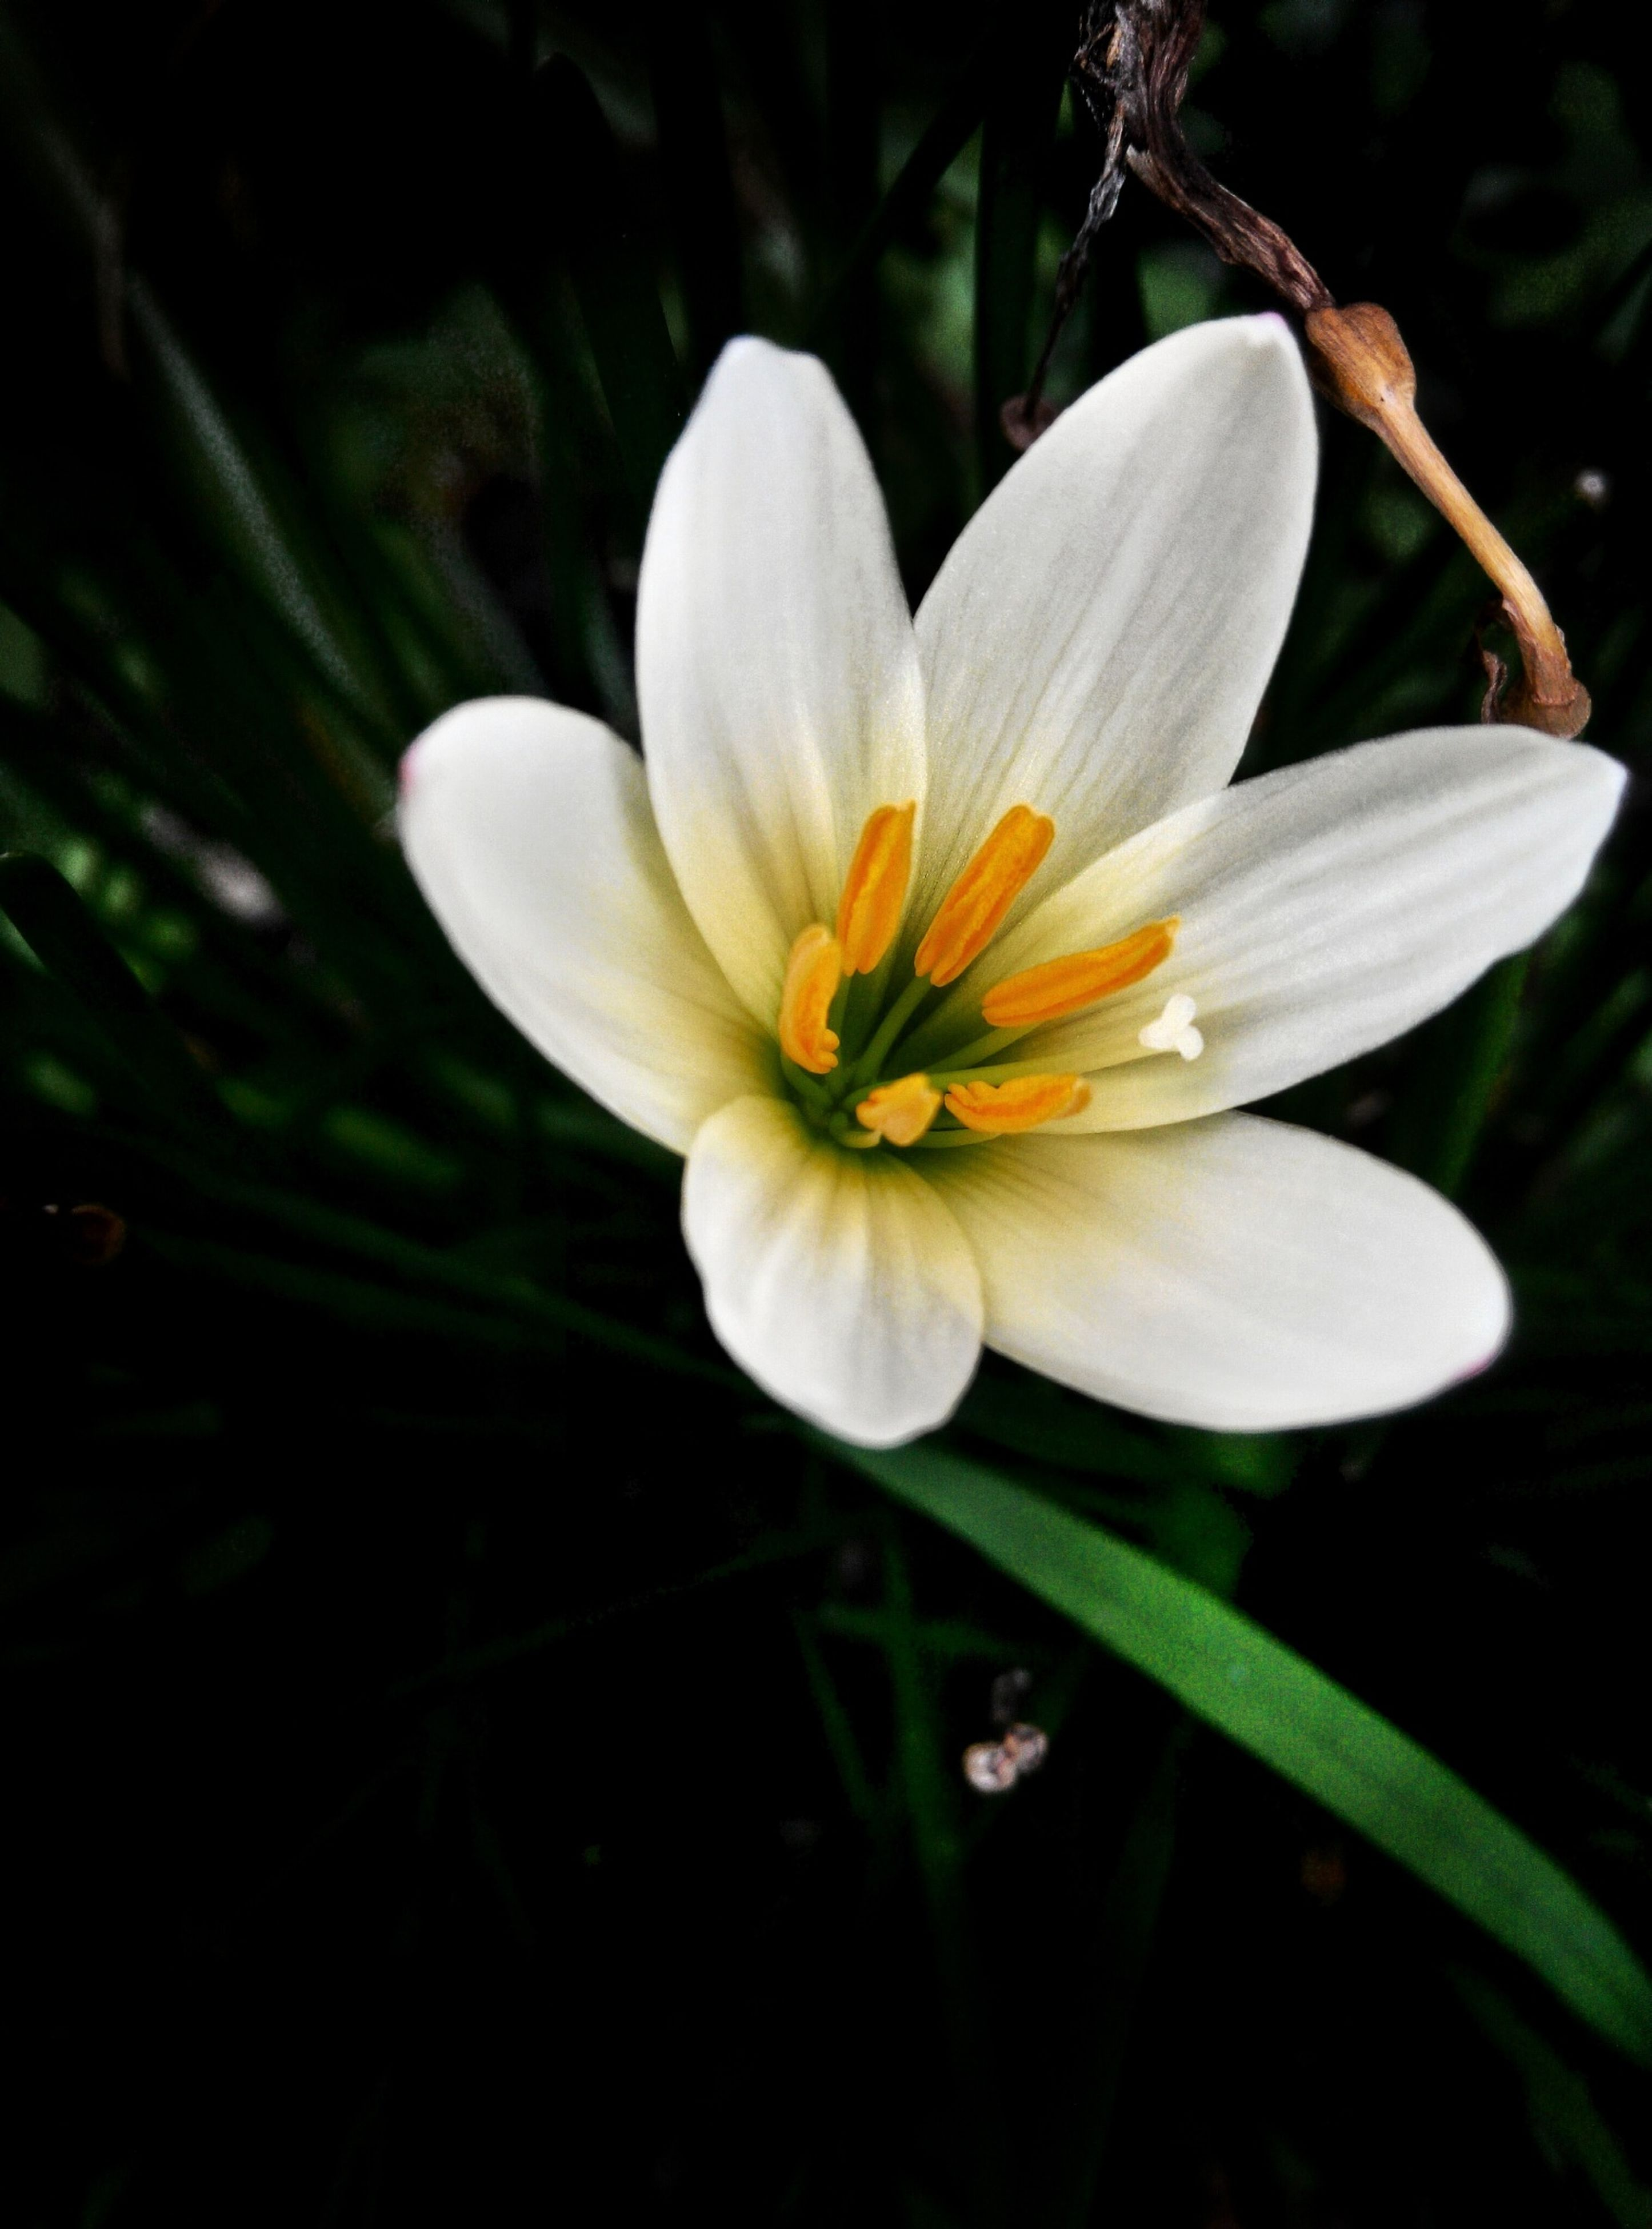 flower, petal, freshness, flower head, fragility, white color, growth, beauty in nature, single flower, close-up, pollen, stamen, nature, blooming, focus on foreground, in bloom, plant, white, yellow, blossom